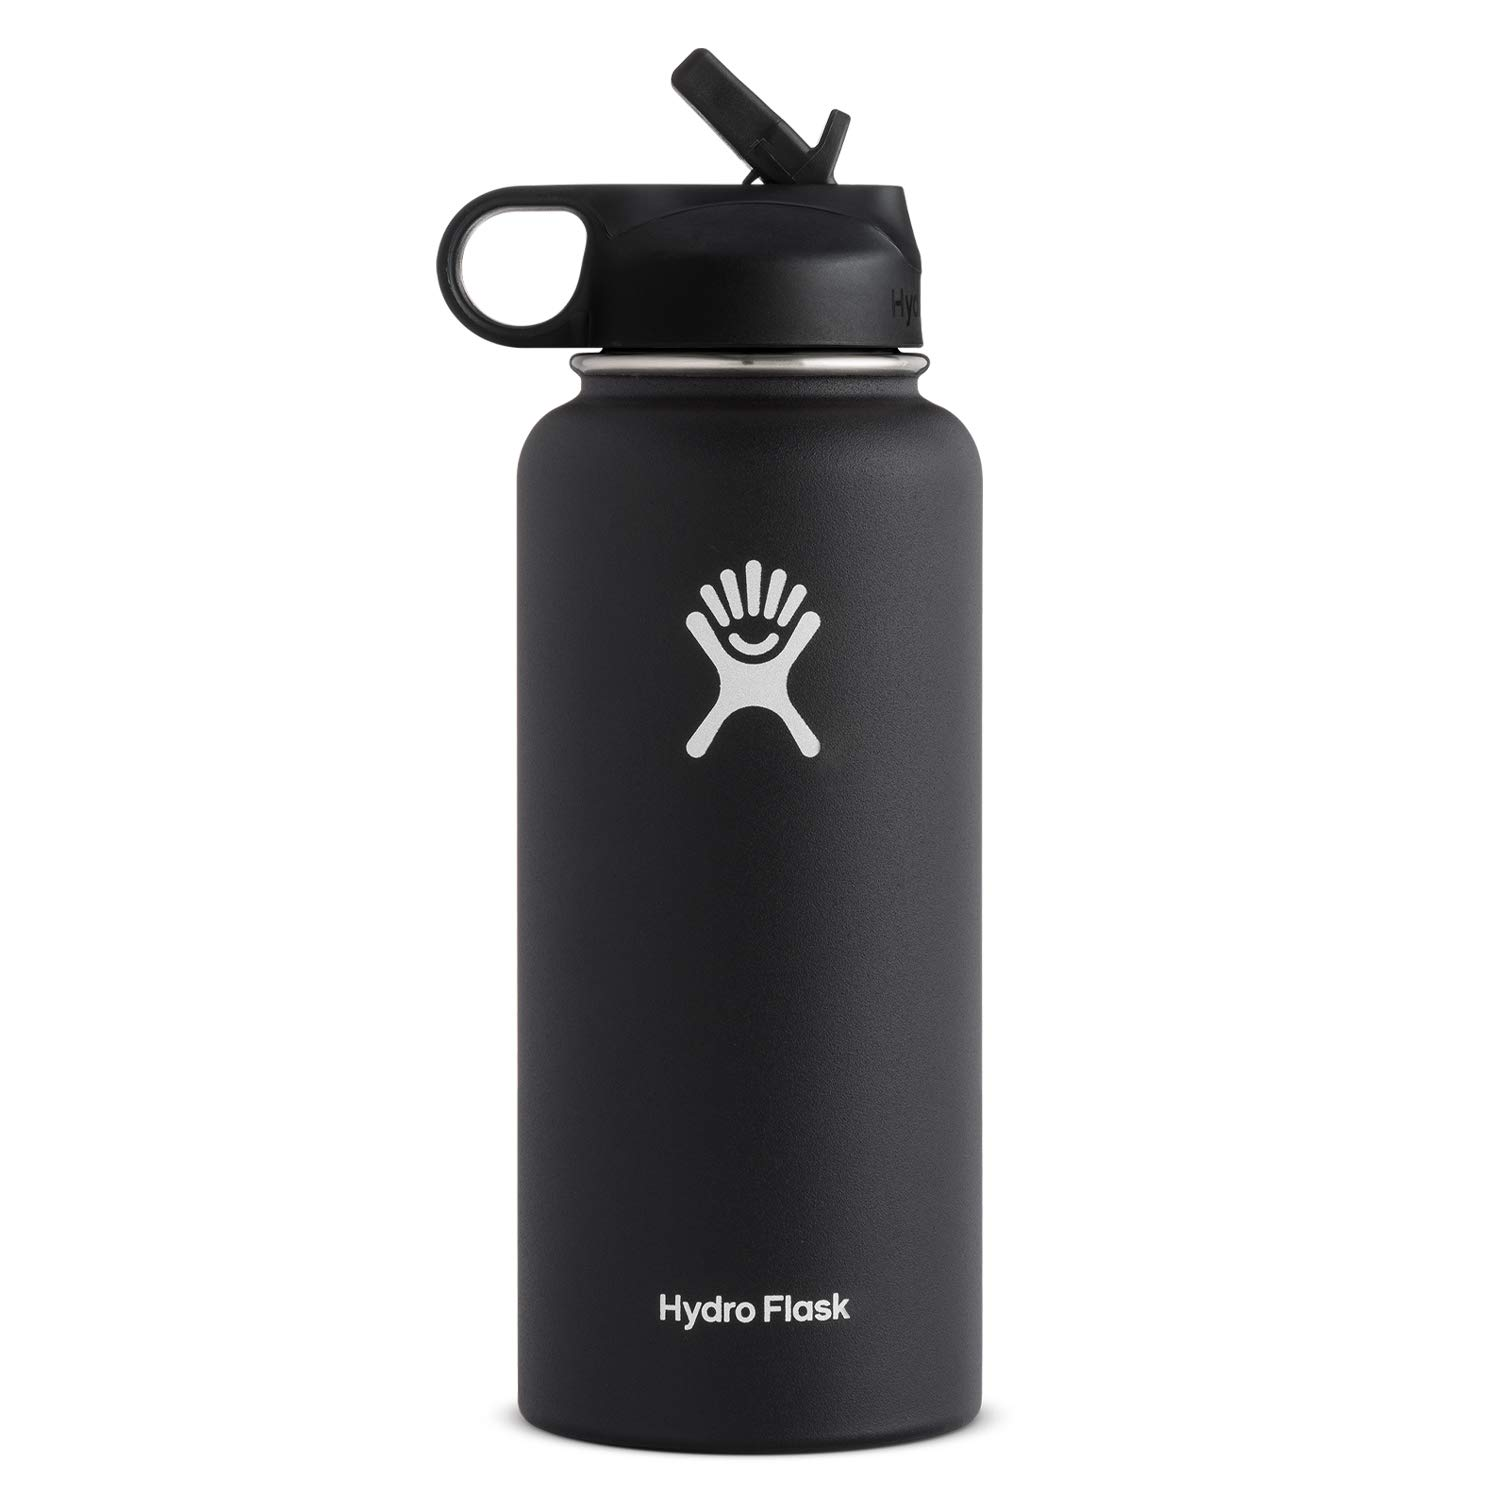 Hydro Flask Water Bottle - Stainless Steel & Vacuum Insulated - Wide Mouth  with Straw Lid - Multiple Sizes & Colors